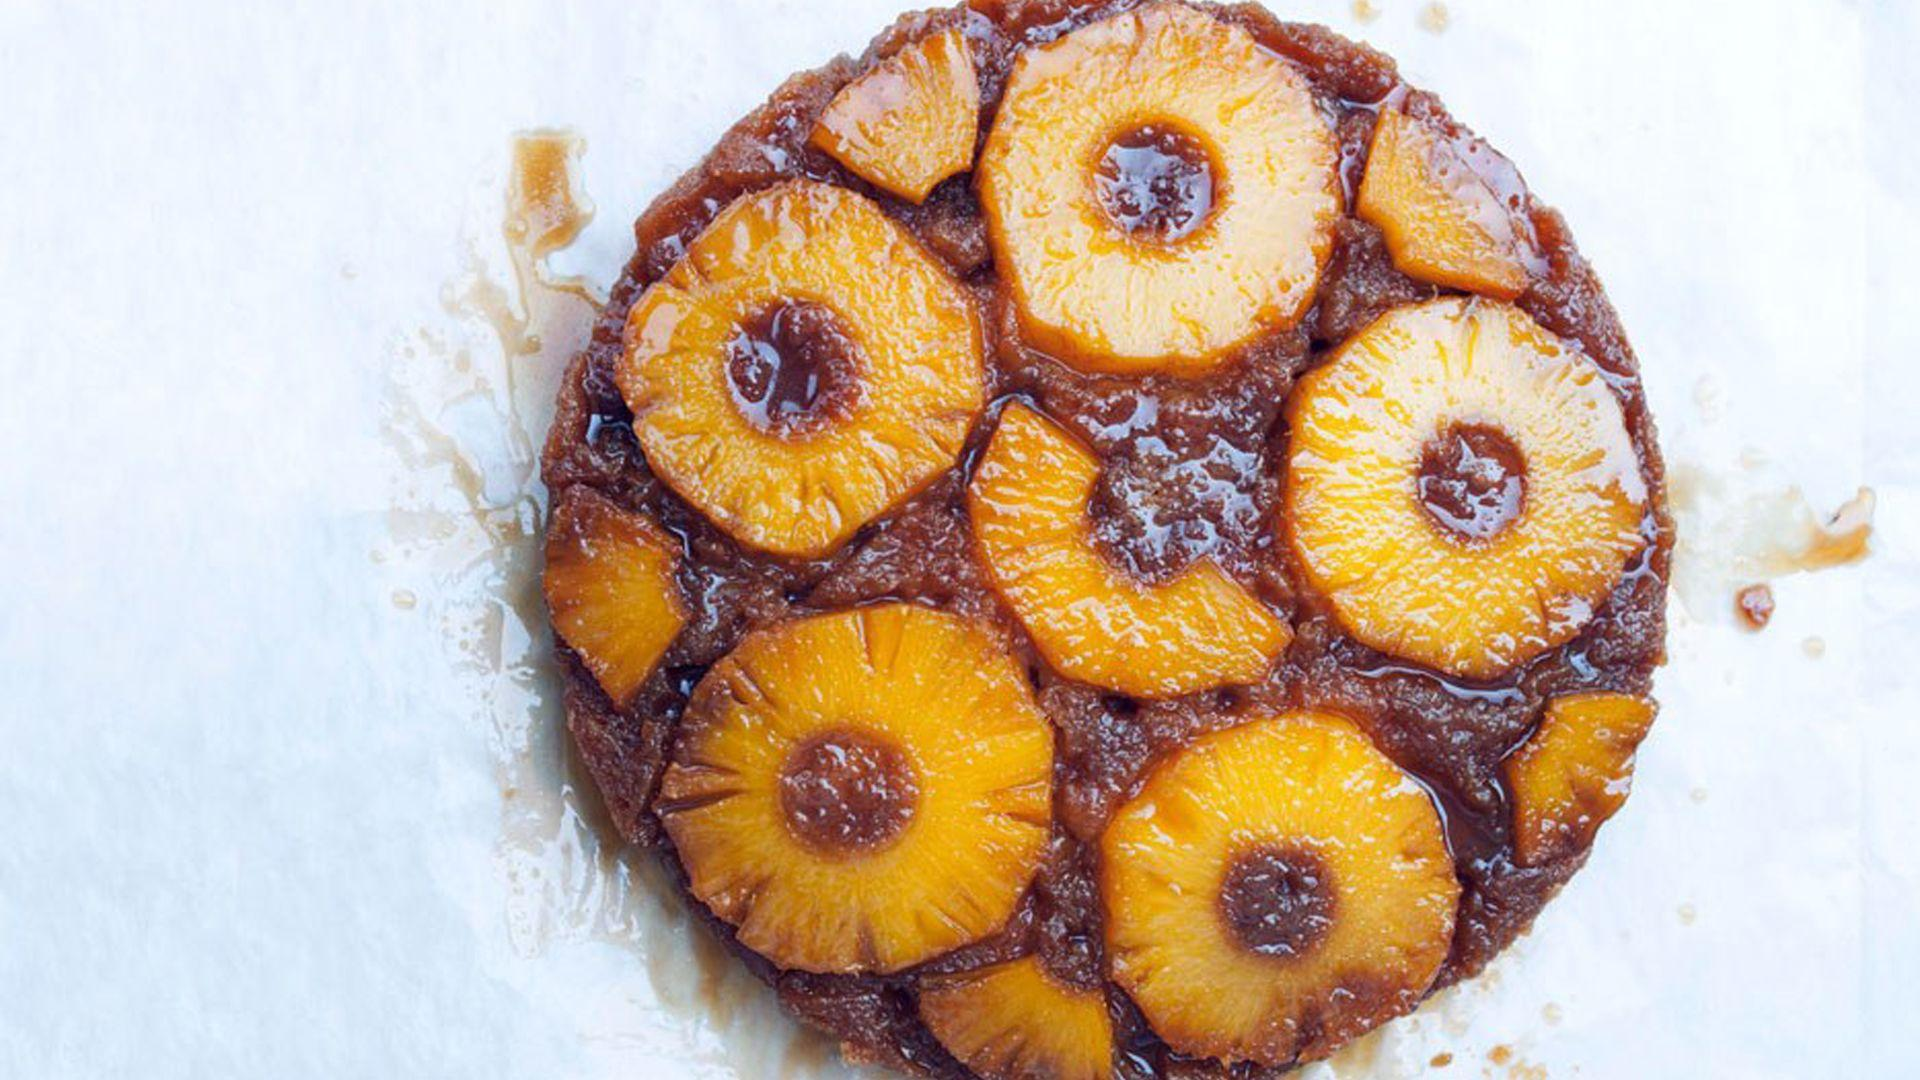 How To Perfectly Assemble A Timeless Pineapple Upside-Down Cake